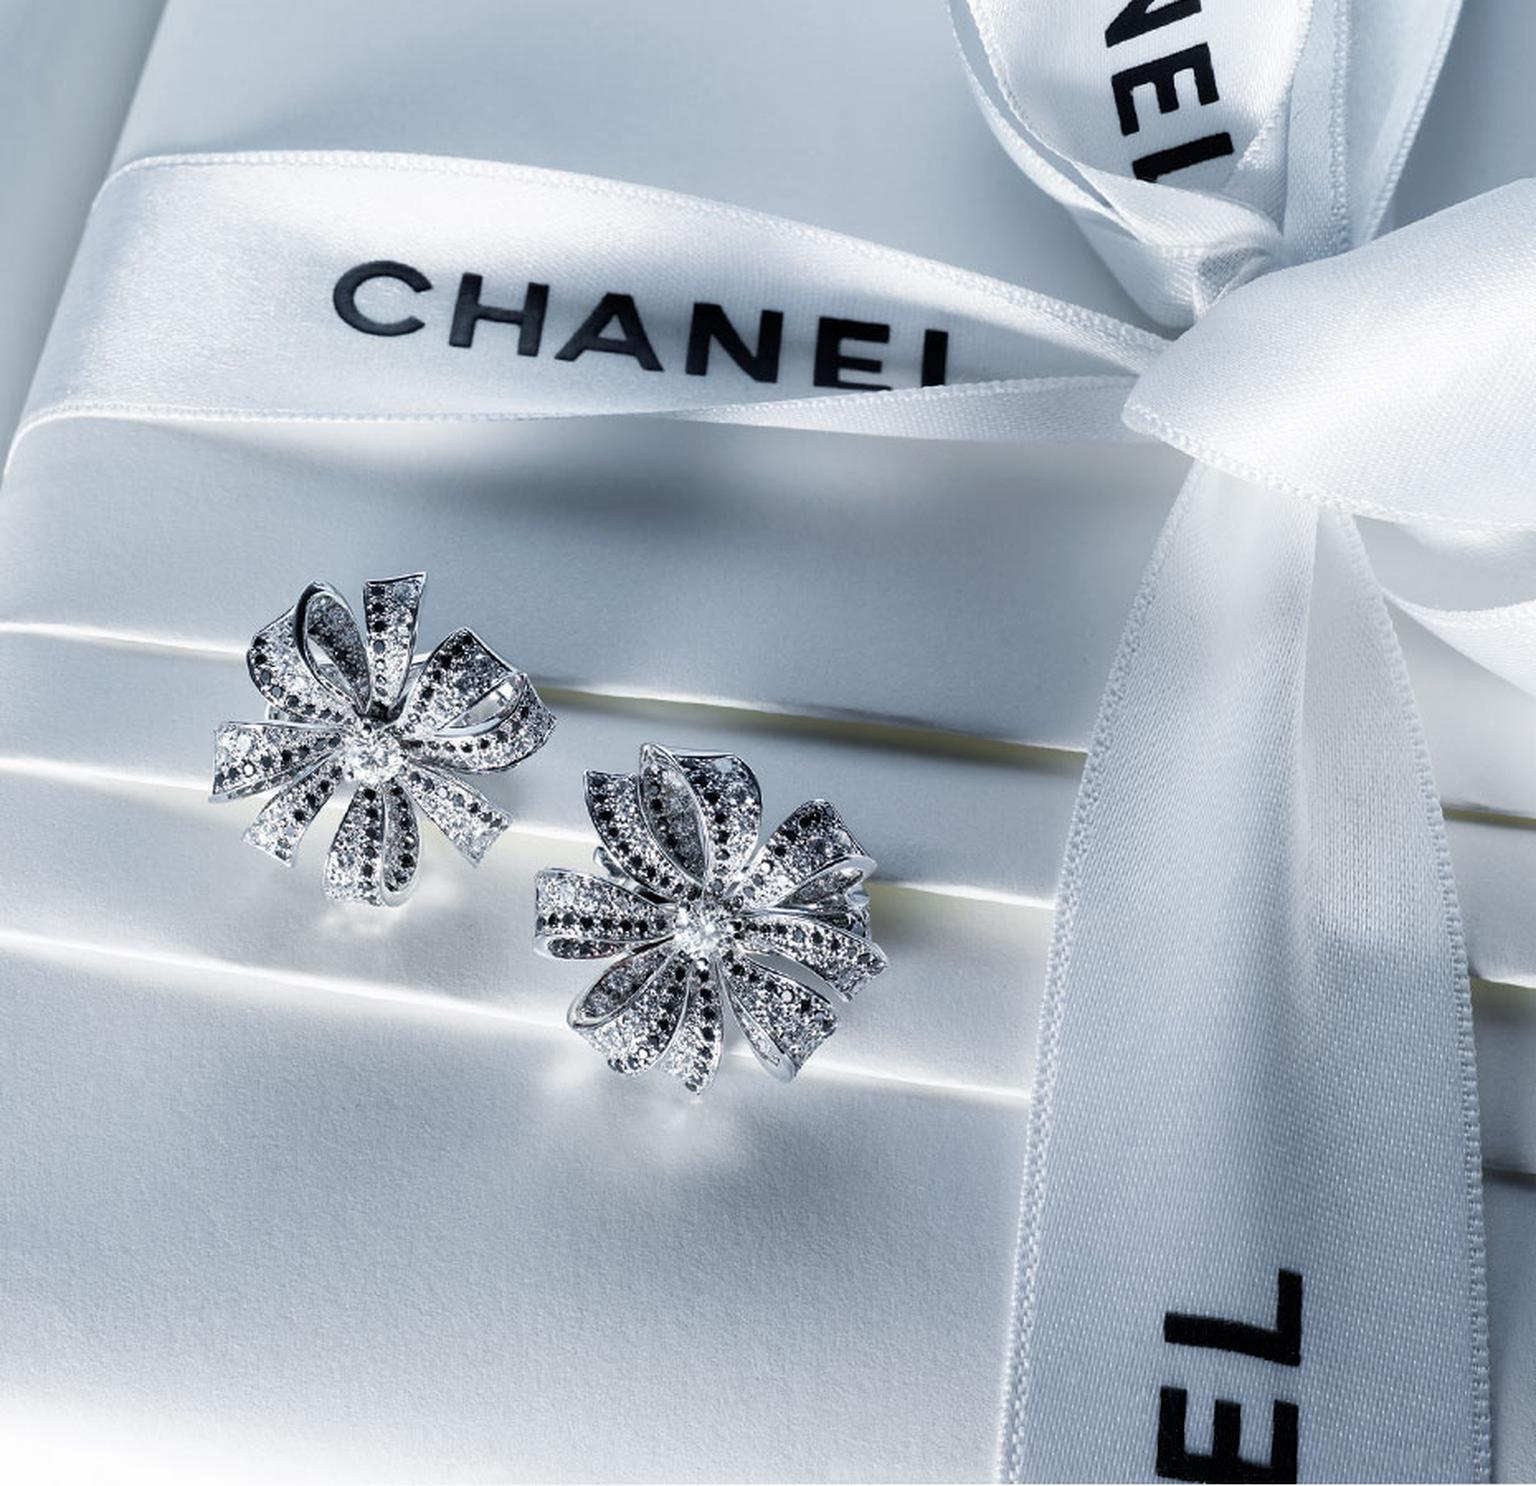 Chanel Boucles de Came´lia earrings in white gold, white diamonds and black diamonds. MAIN PIC